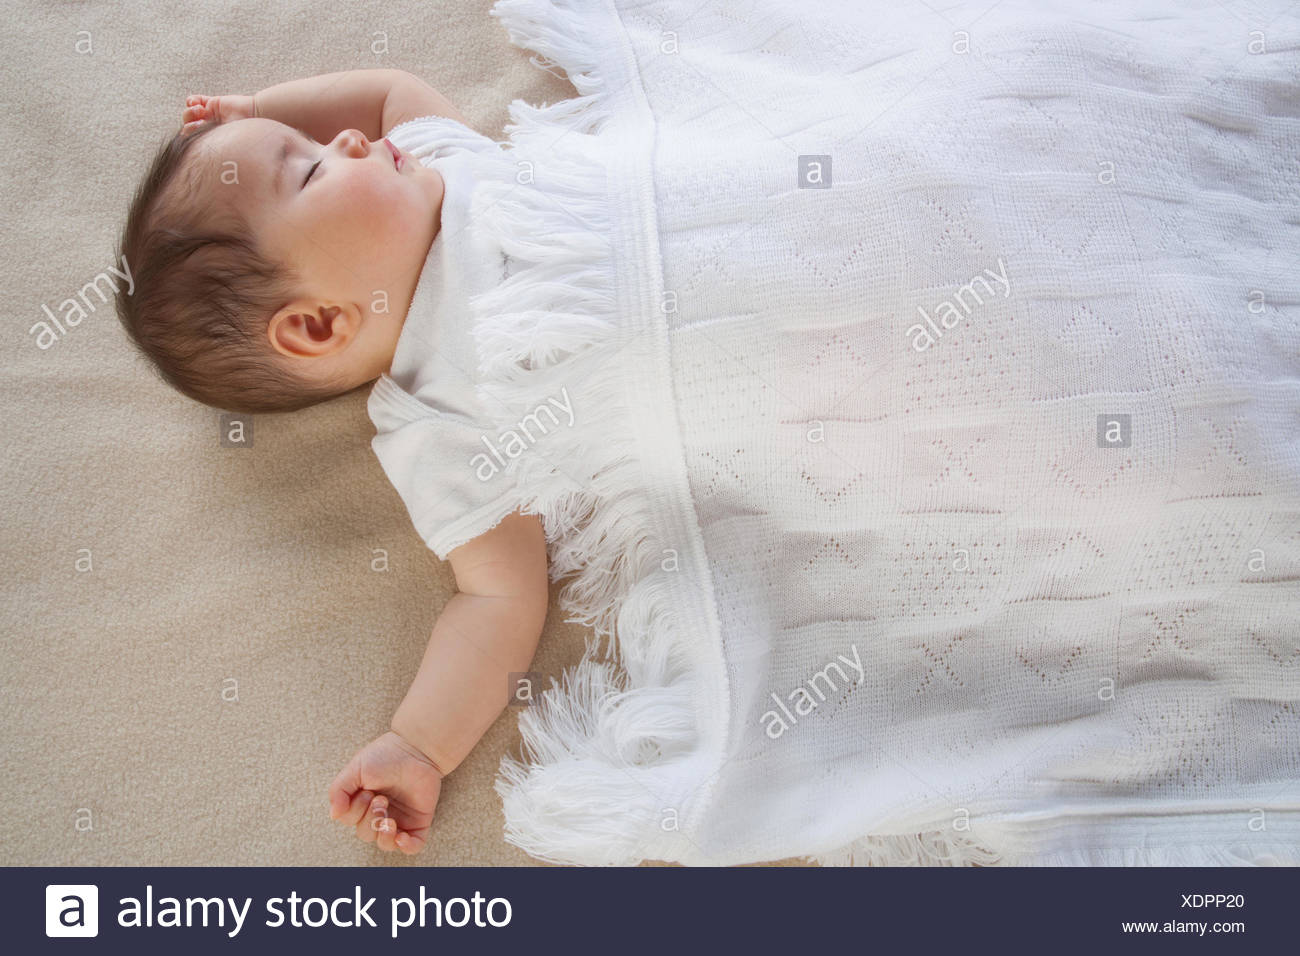 Un bébé dort Photo Stock